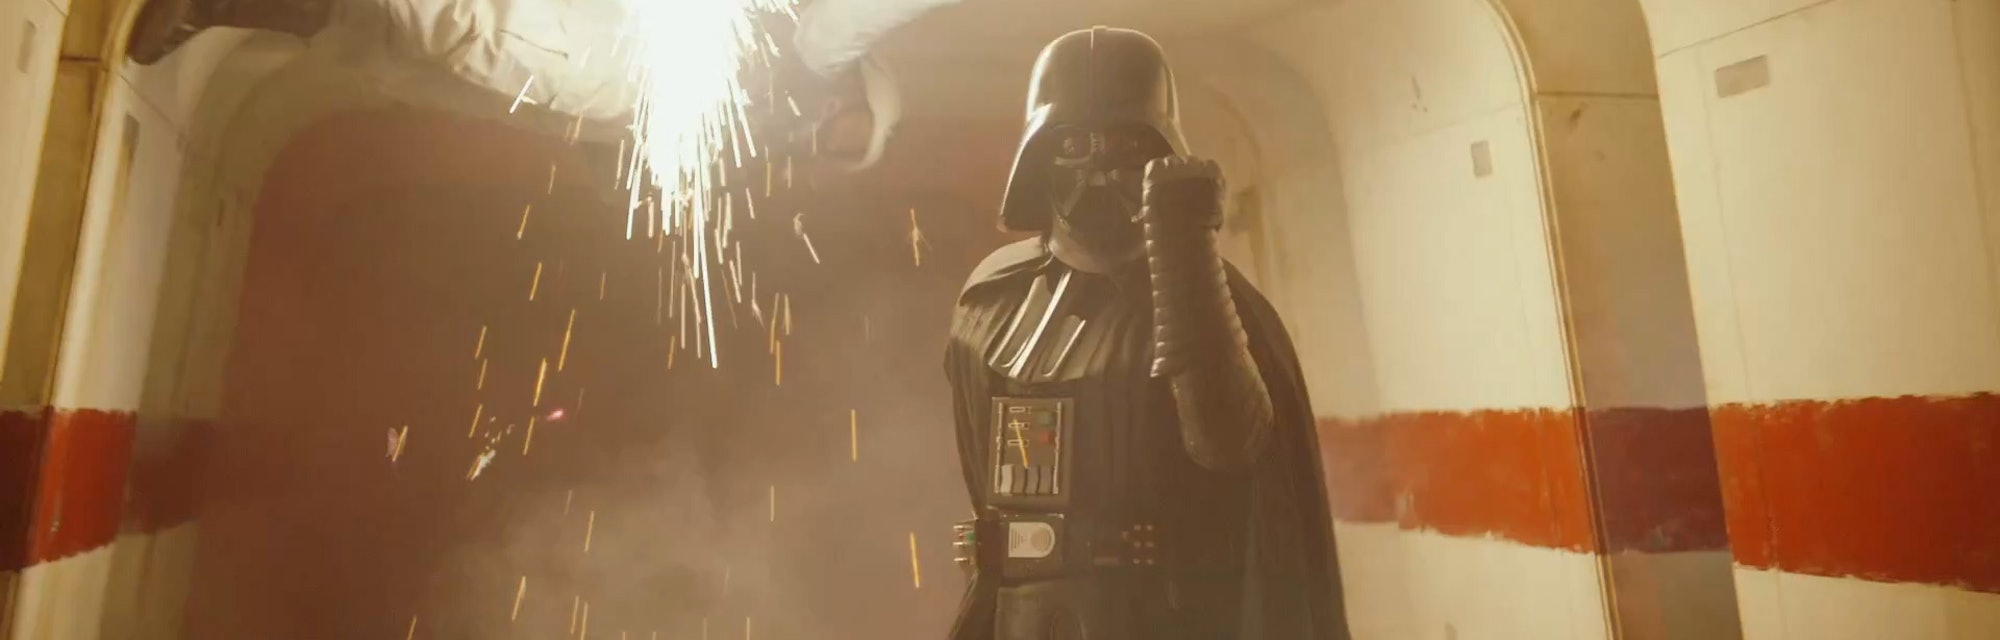 Darth Vader Killed Krennic In Original Rogue One Ending